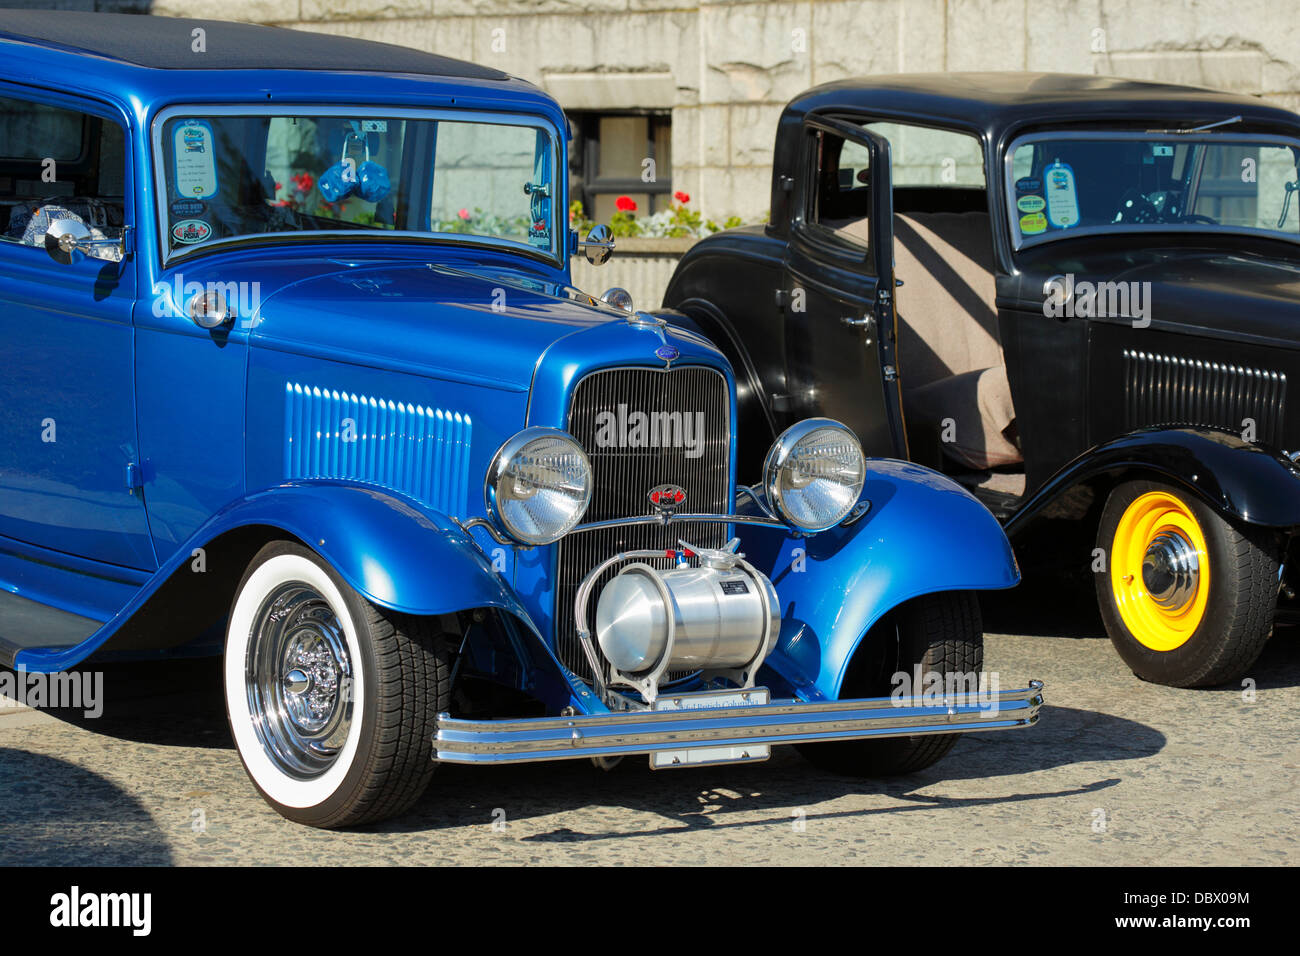 1932 Ford classic automobiles in Northwest Deuce Days car show-Victoria, British Columbia, Canada. - Stock Image